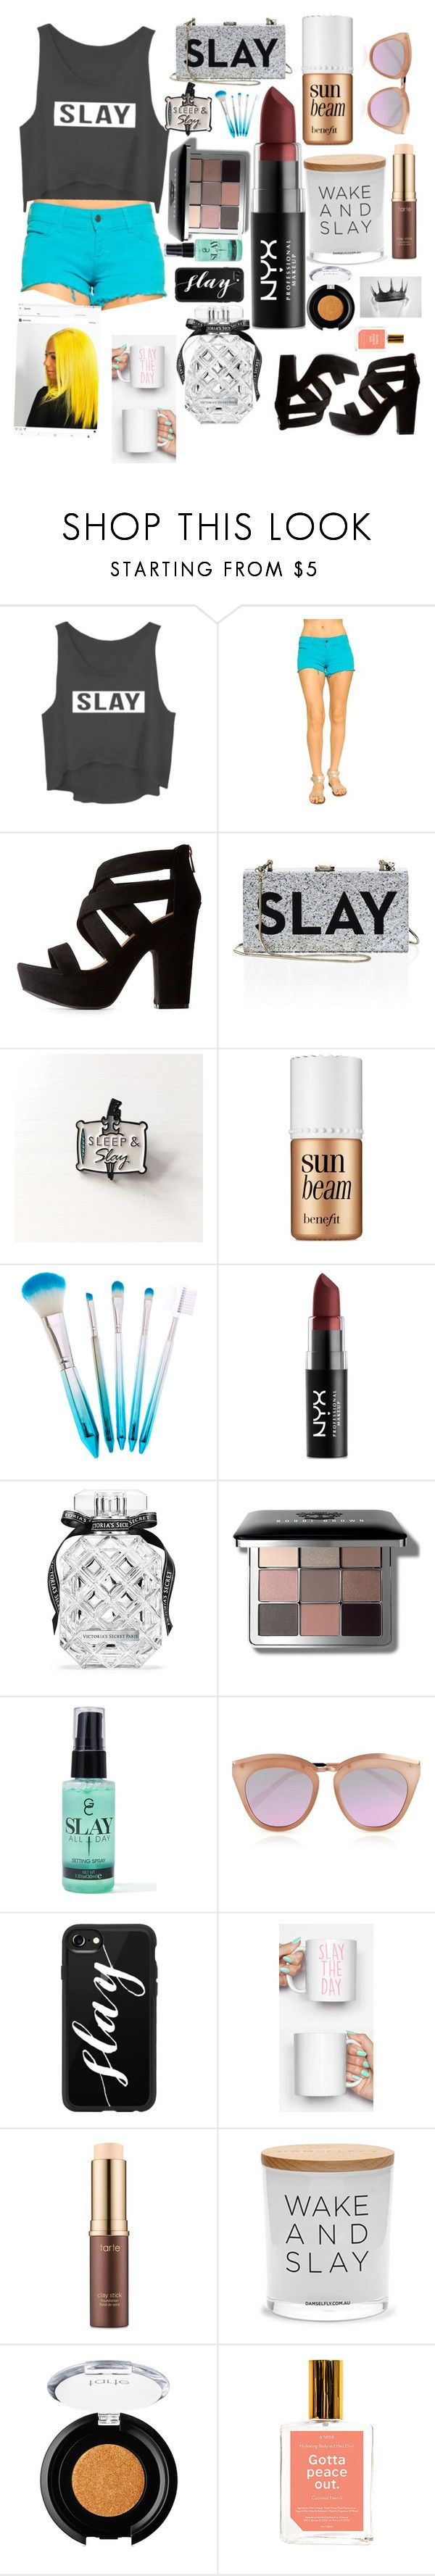 """""""Slay All Day🌴🌴🐟🐟🍼🍼"""" by olivia-louise3 ❤ liked on Polyvore featuring beauty, Siwy, Bamboo, Milly, Benefit, NYX, Victoria's Secret, Bobbi Brown Cosmetics, Gerard Cosmetics and Le Specs"""